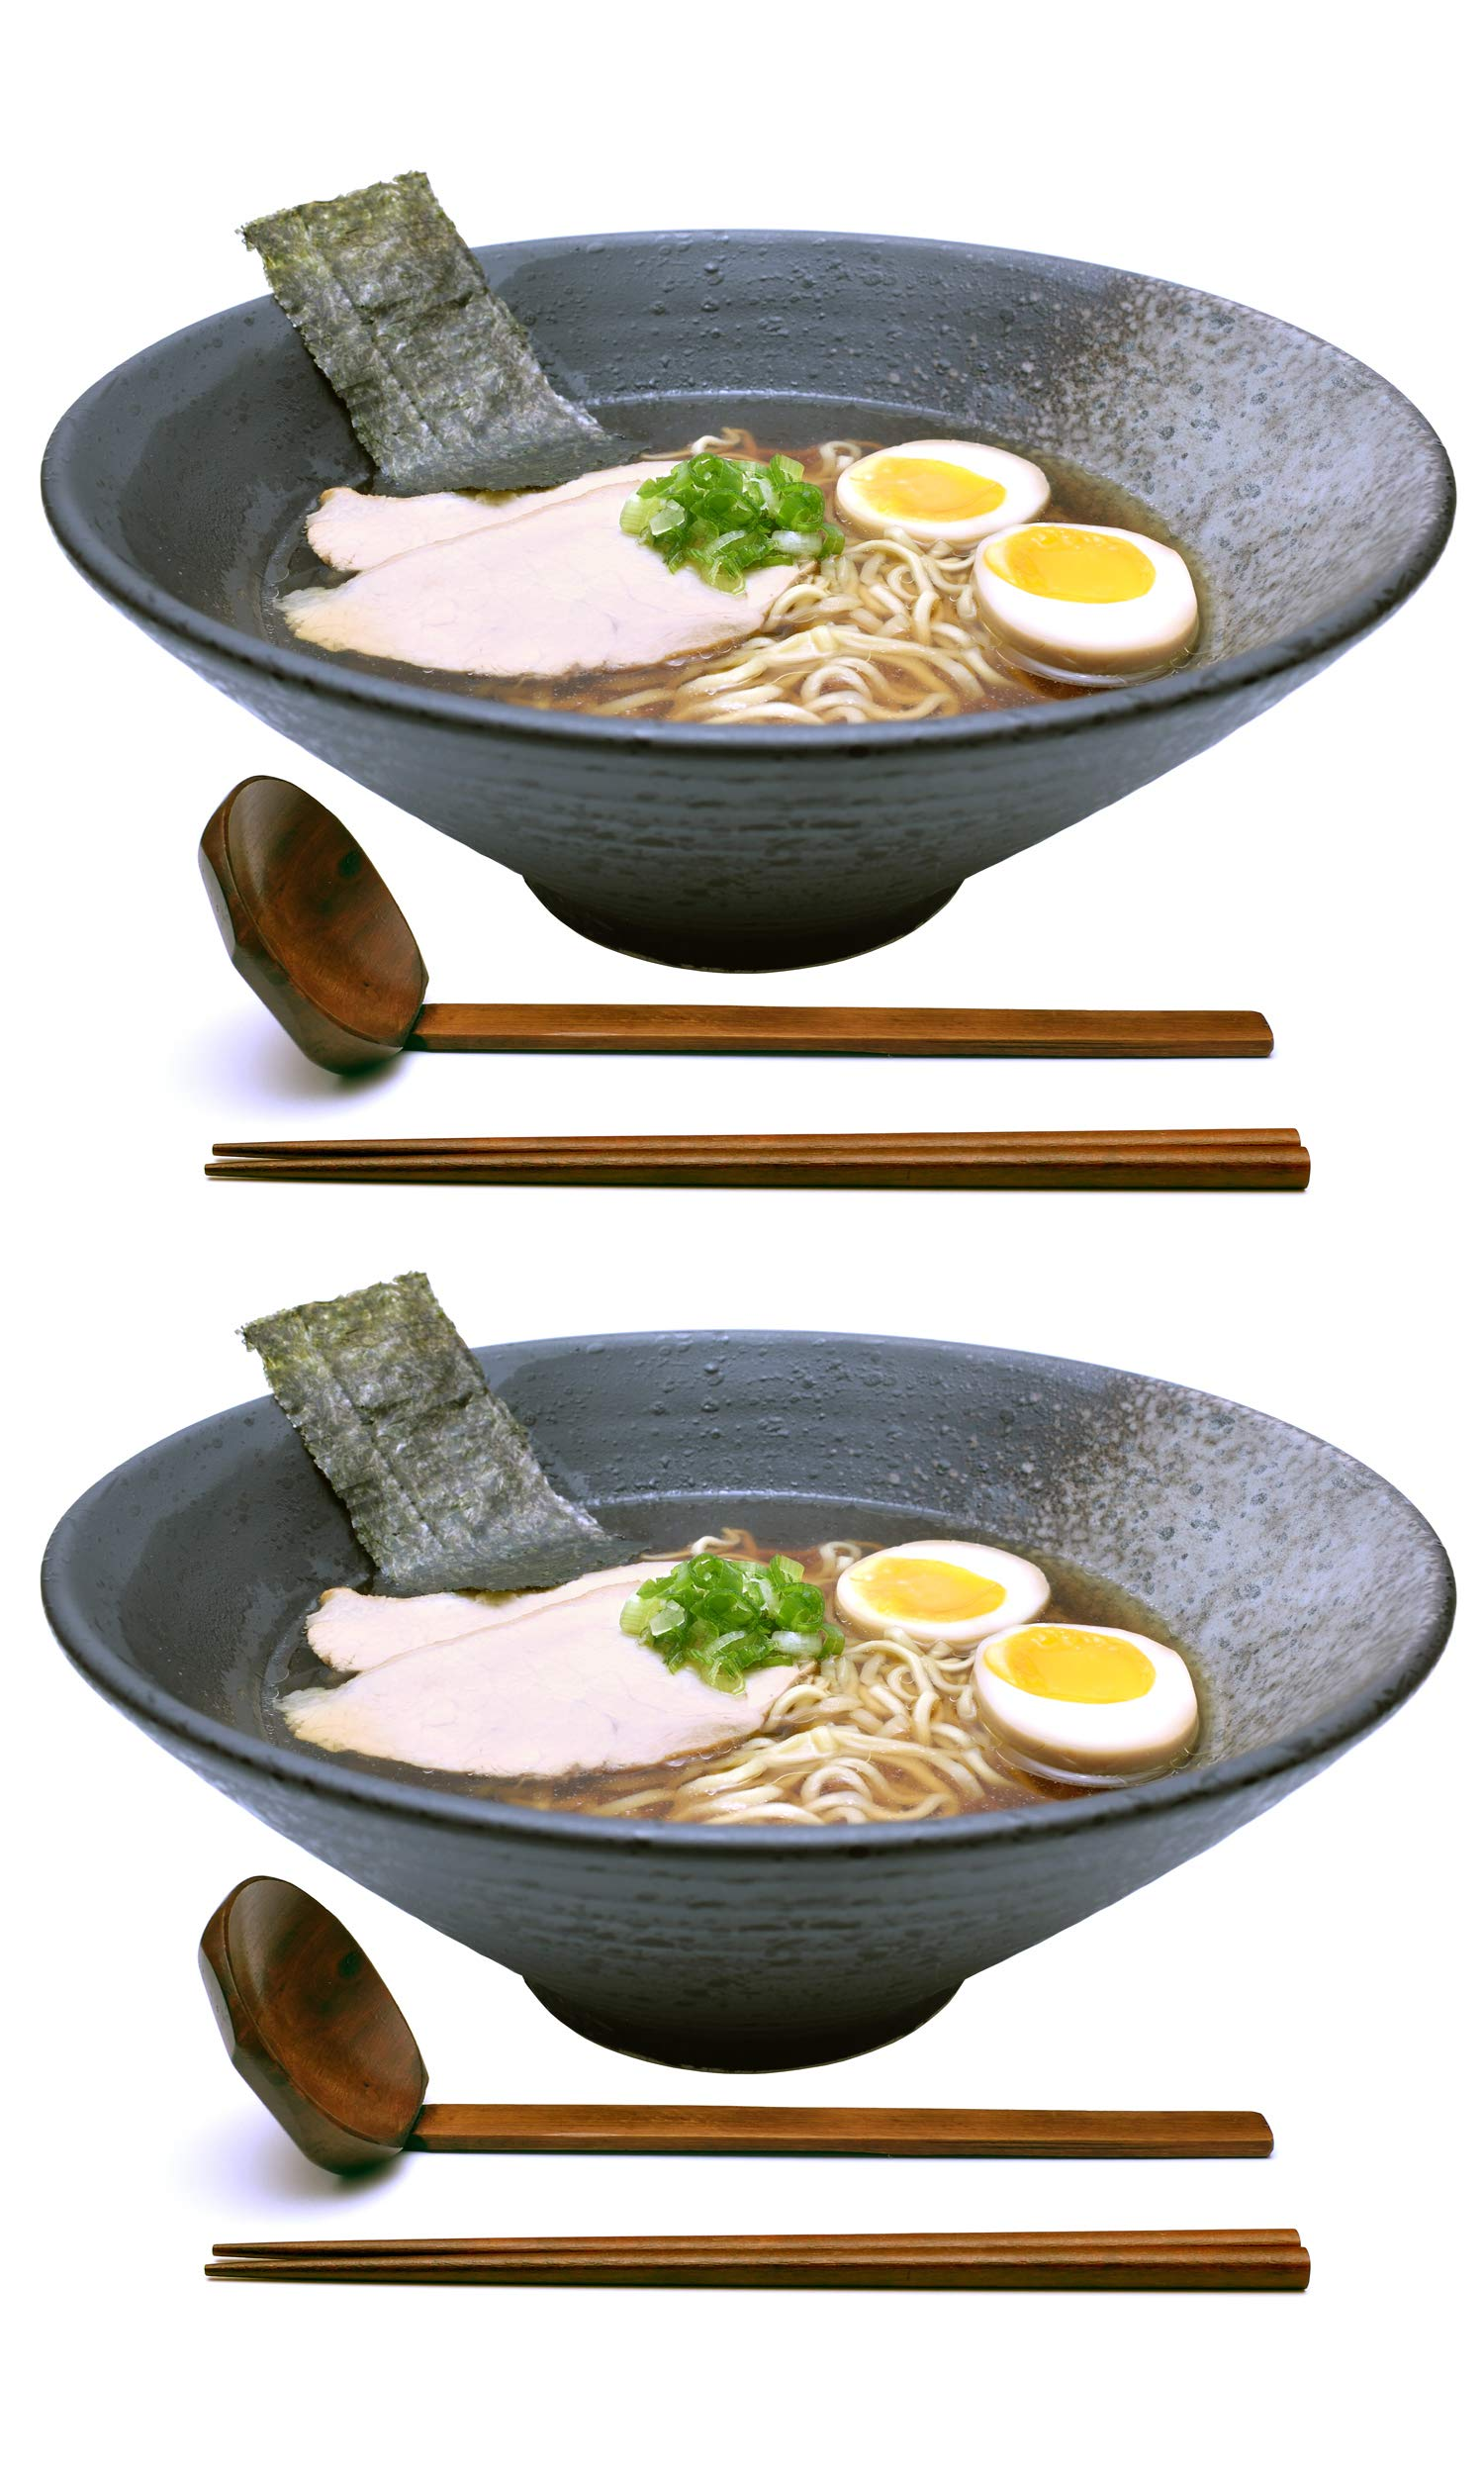 2 sets (6 piece) Large Japanese Ramen Noodle Soup Bowl Ceramic Dishware Set with Matching Spoon and Chopsticks for Udon Soba Pho Asian Noodles